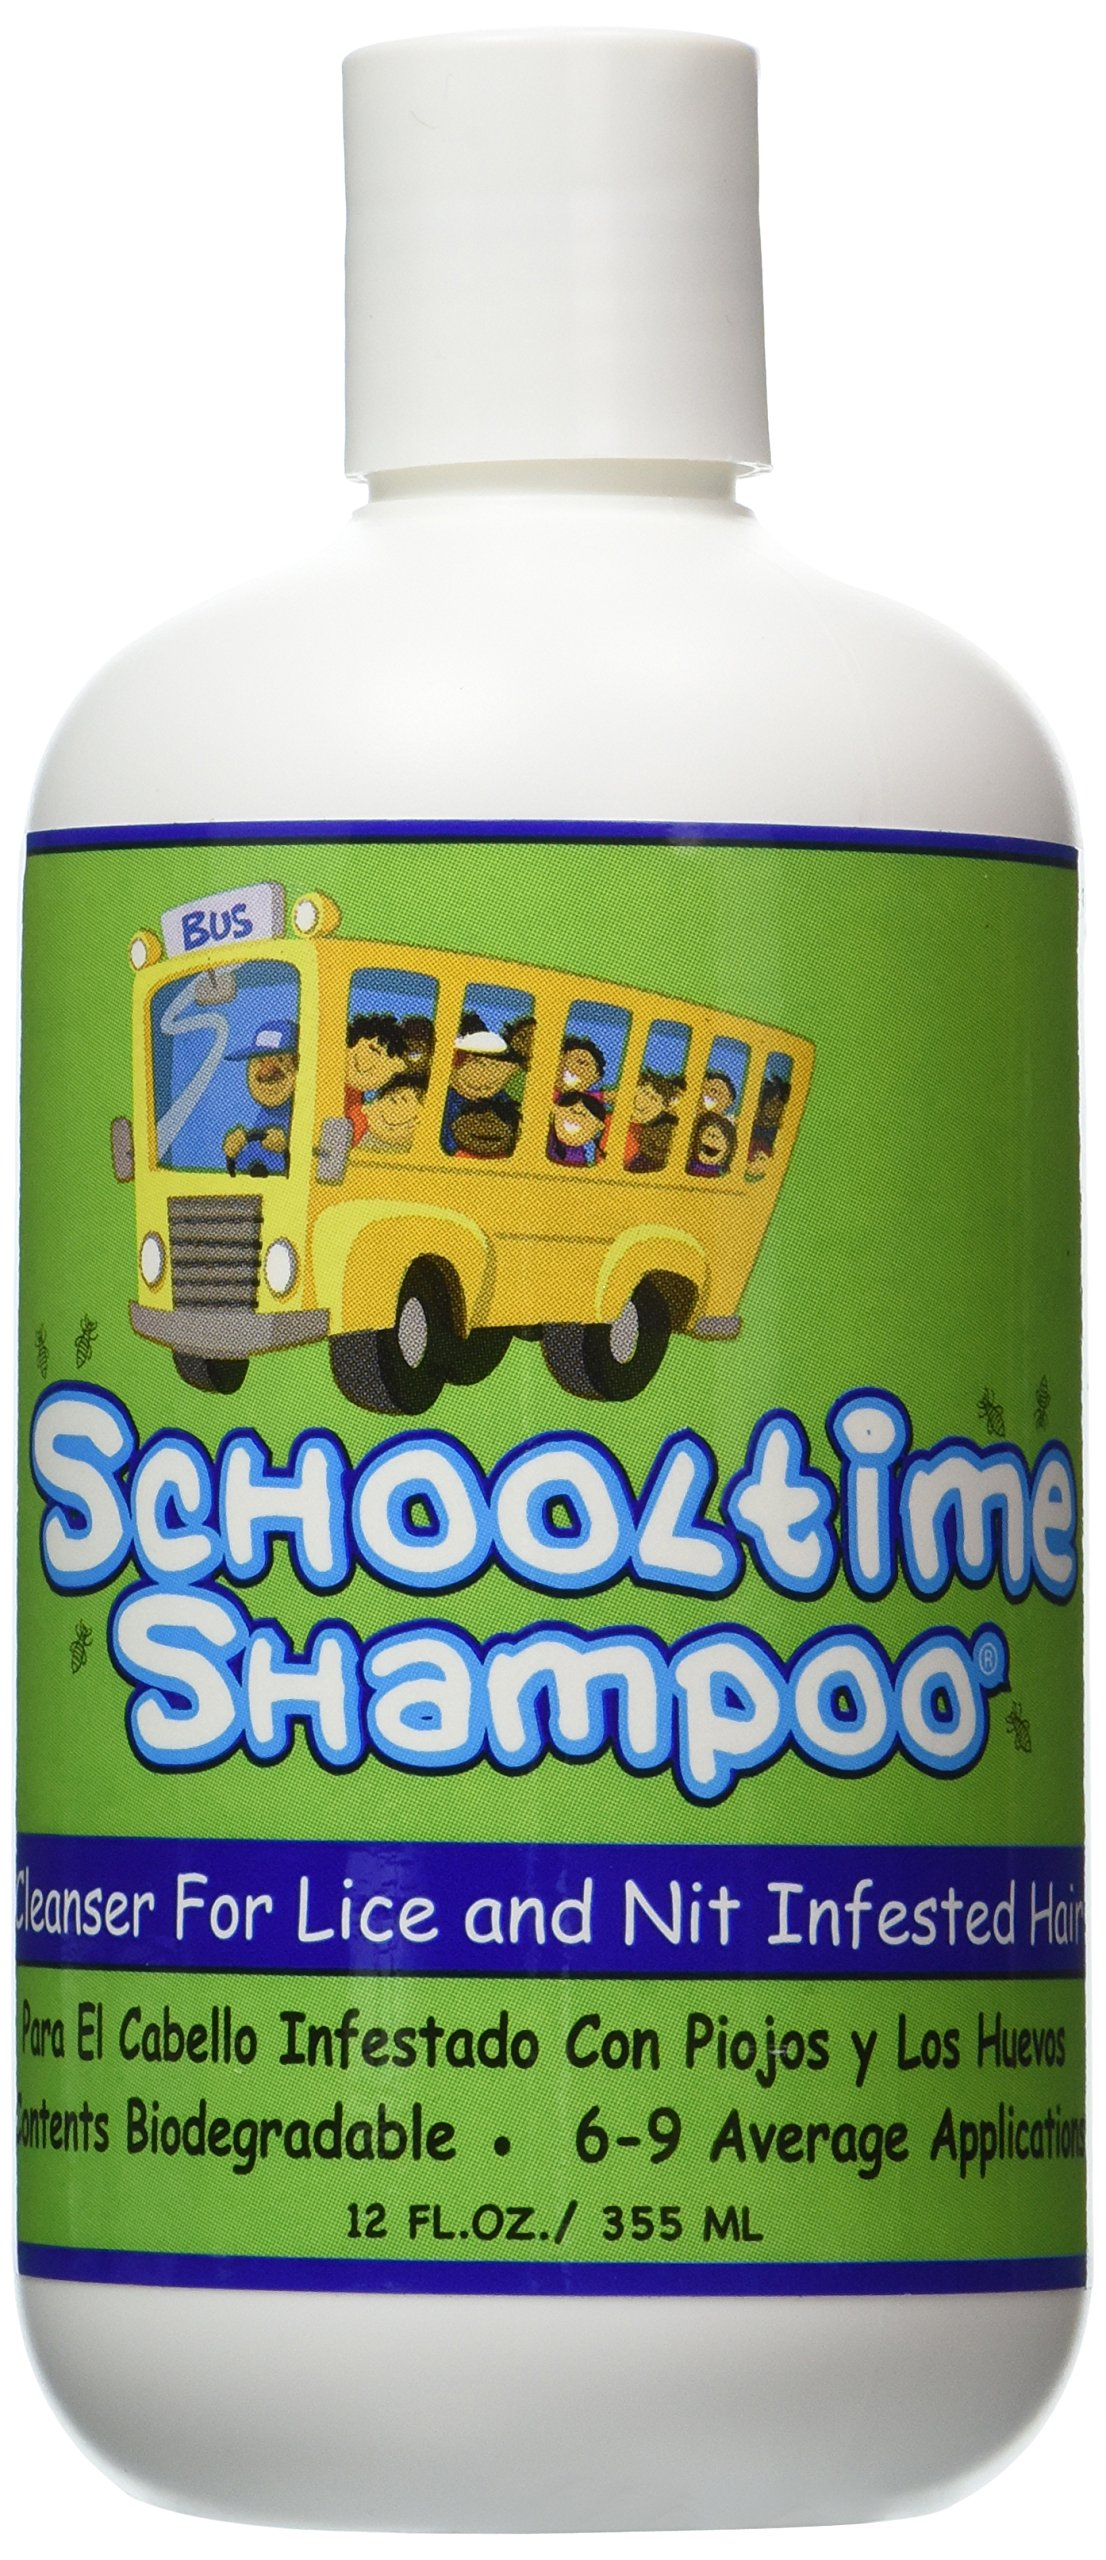 Schooltime Shampoo for Head Lice & Nit Removal - 12 OZ. Highly Effective After One 15 Minute Application by Schooltime